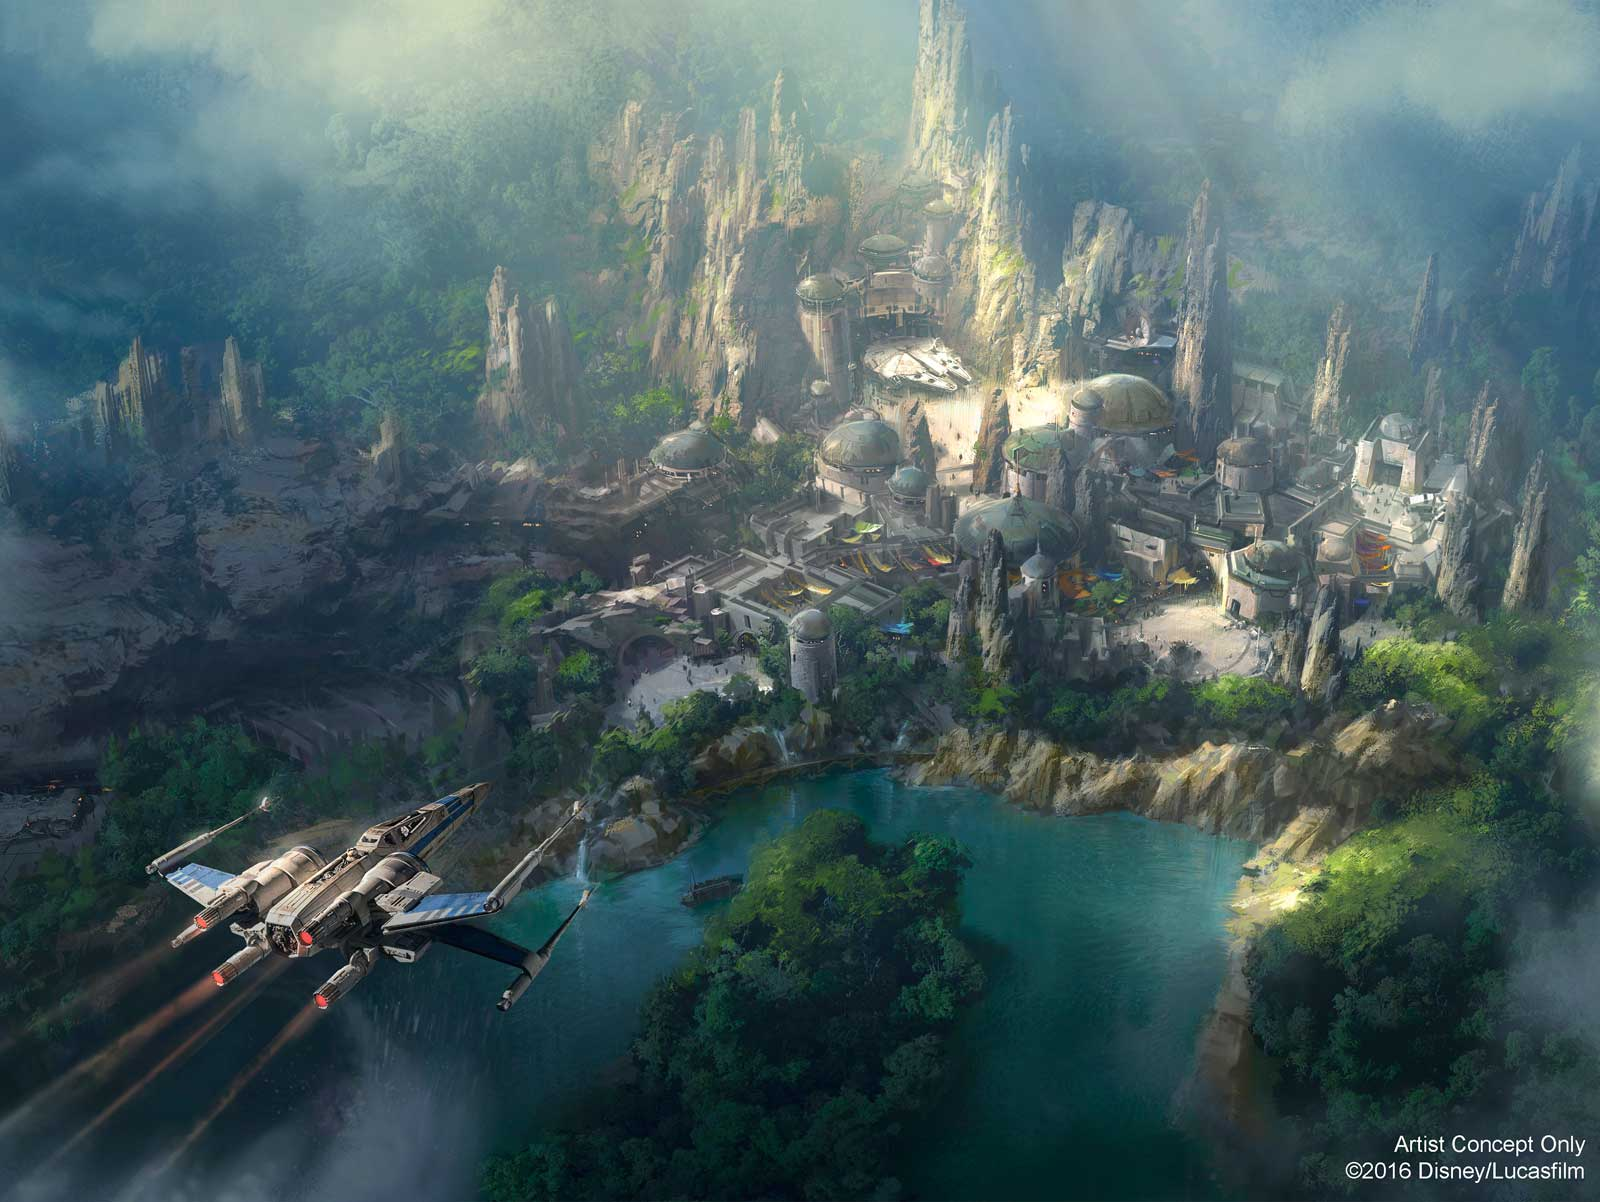 Disneyland Star Wars Concept Art